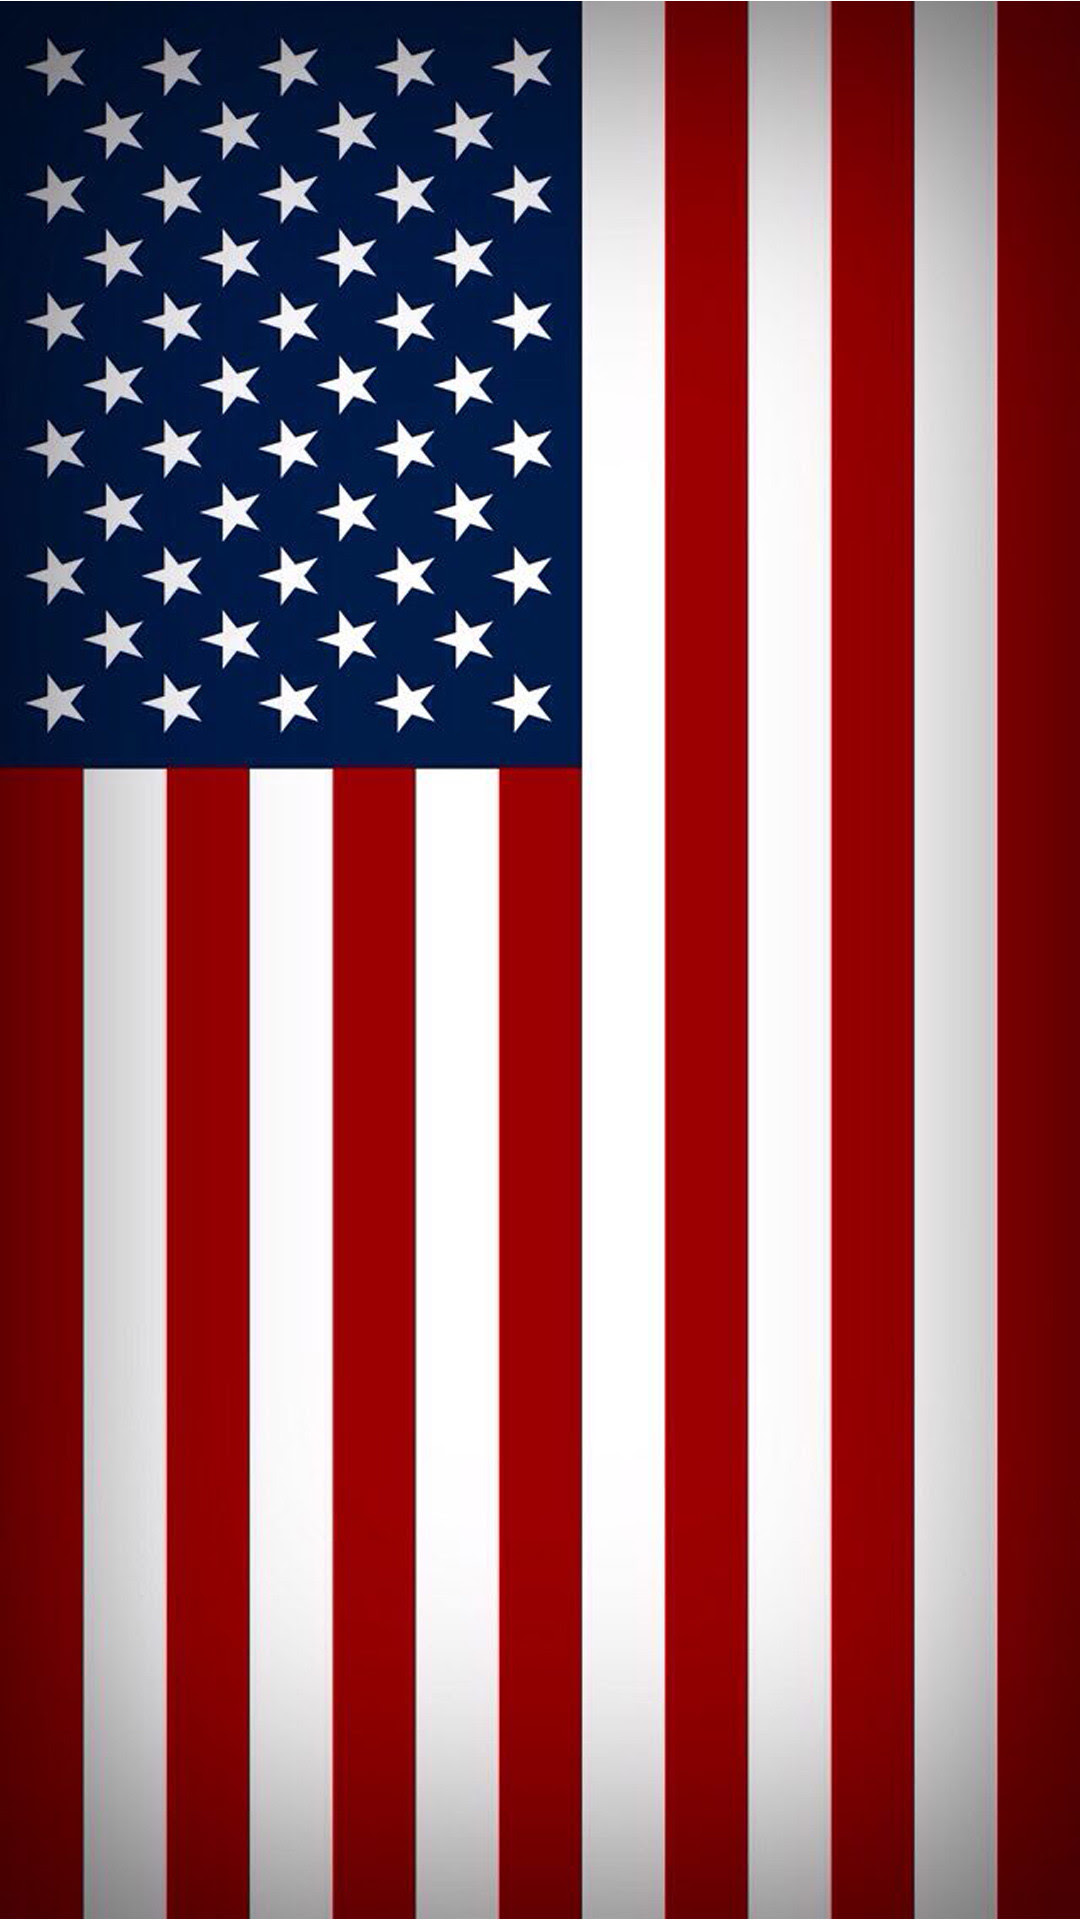 American Flag Wallpaper Iphone 6 62 Images